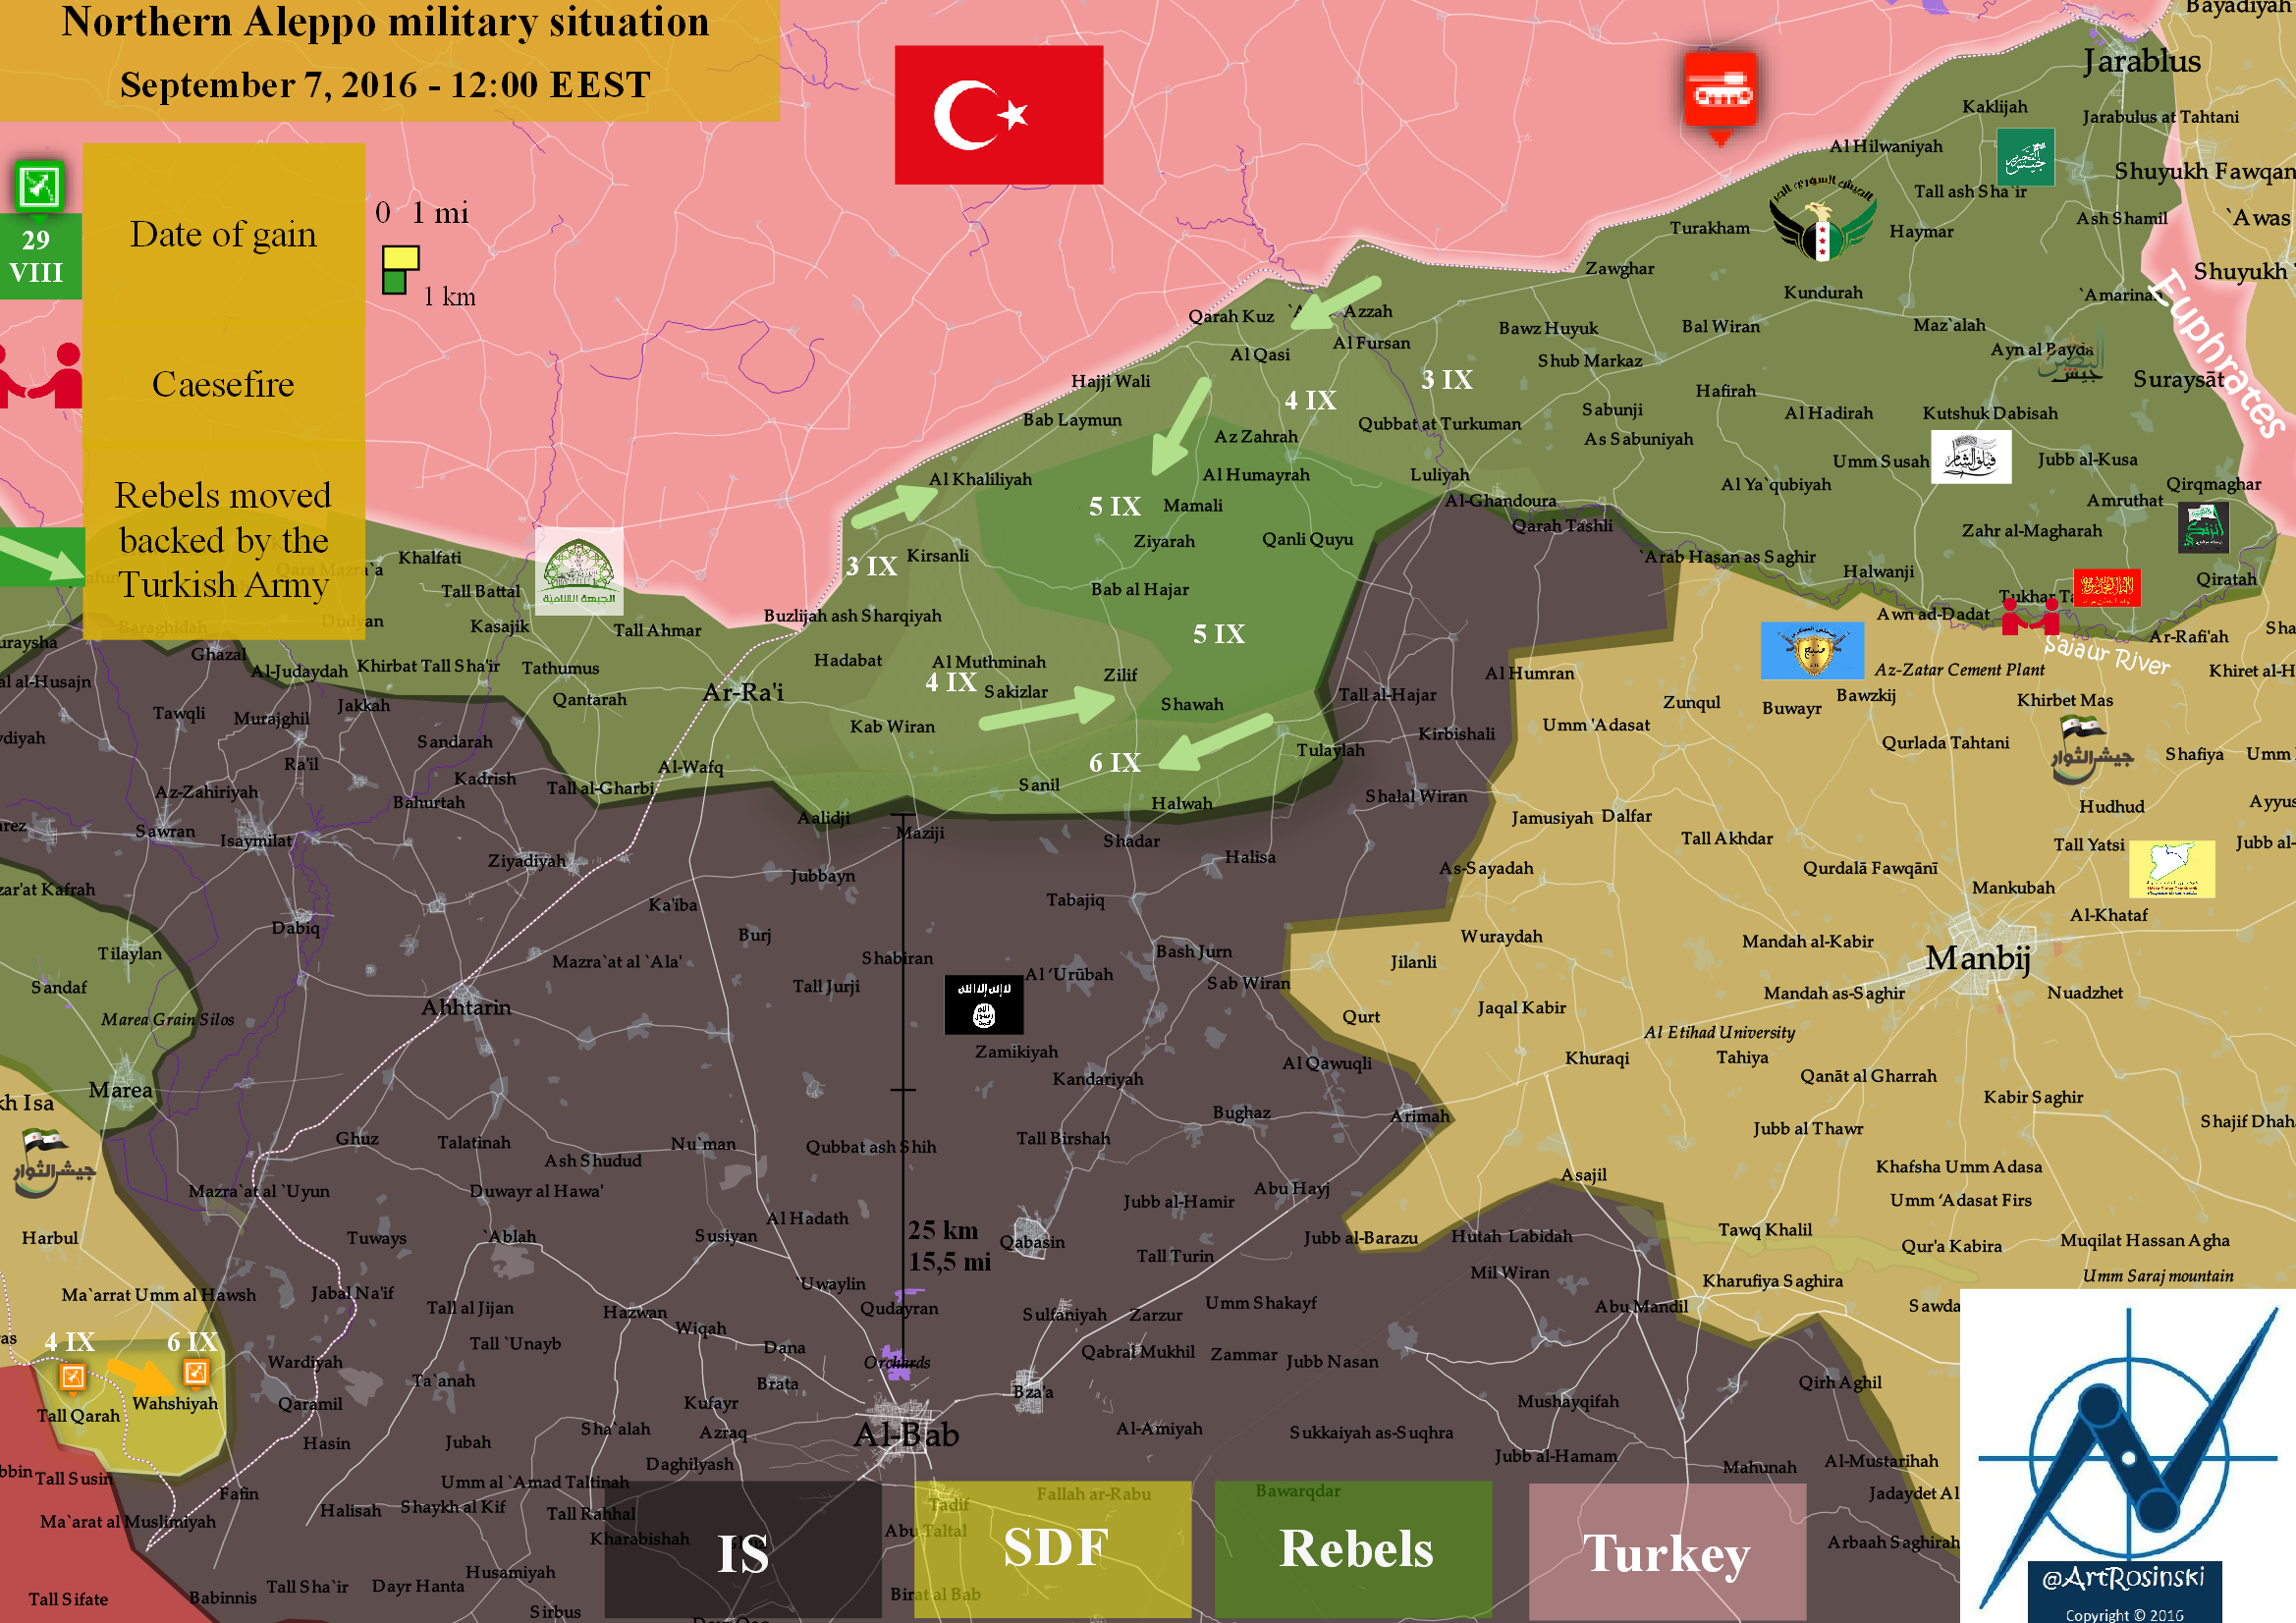 Northern Aleppo military situation (September 7, 2016)